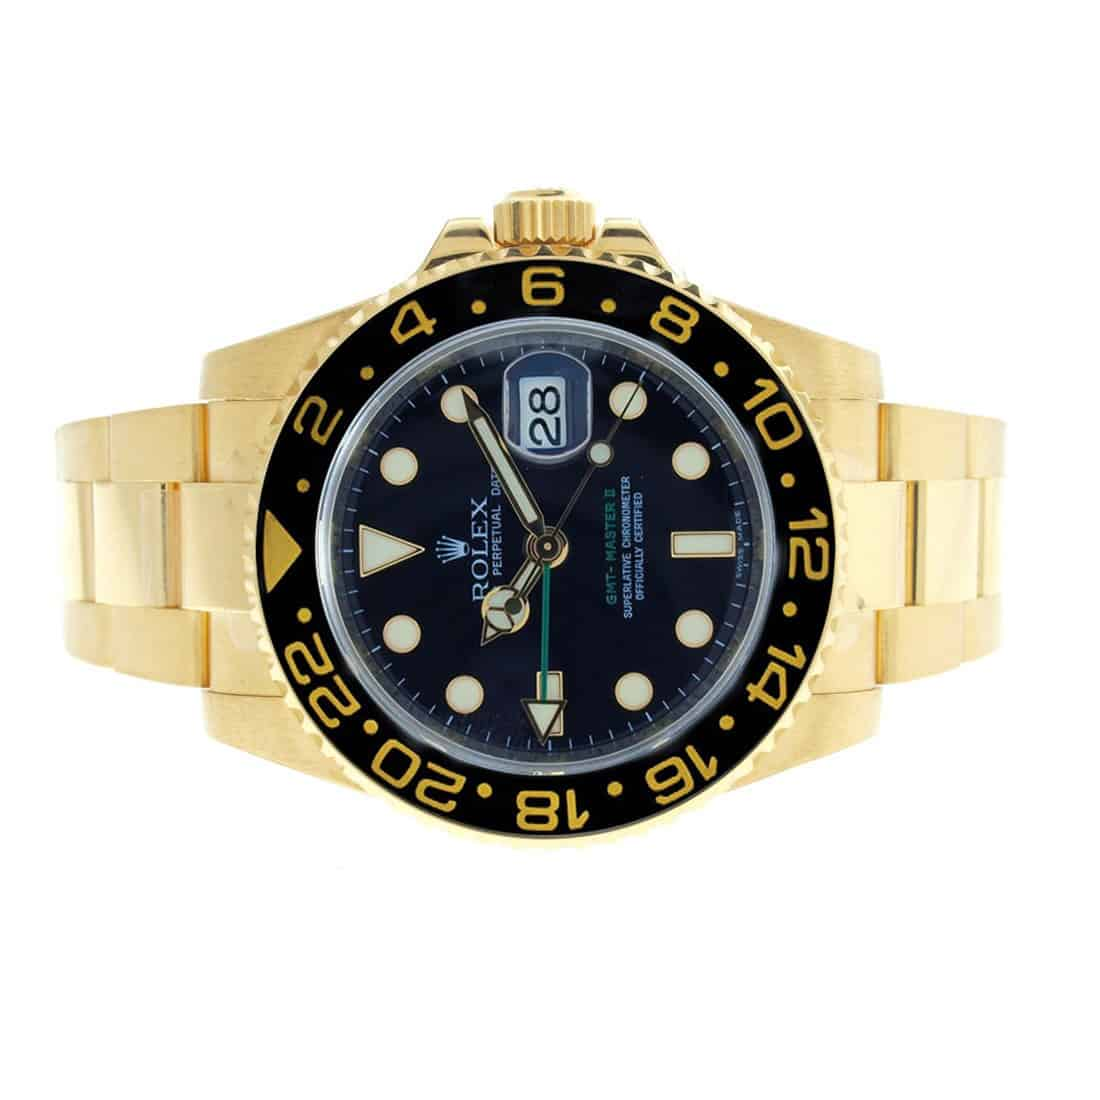 GMT Master II 06 side